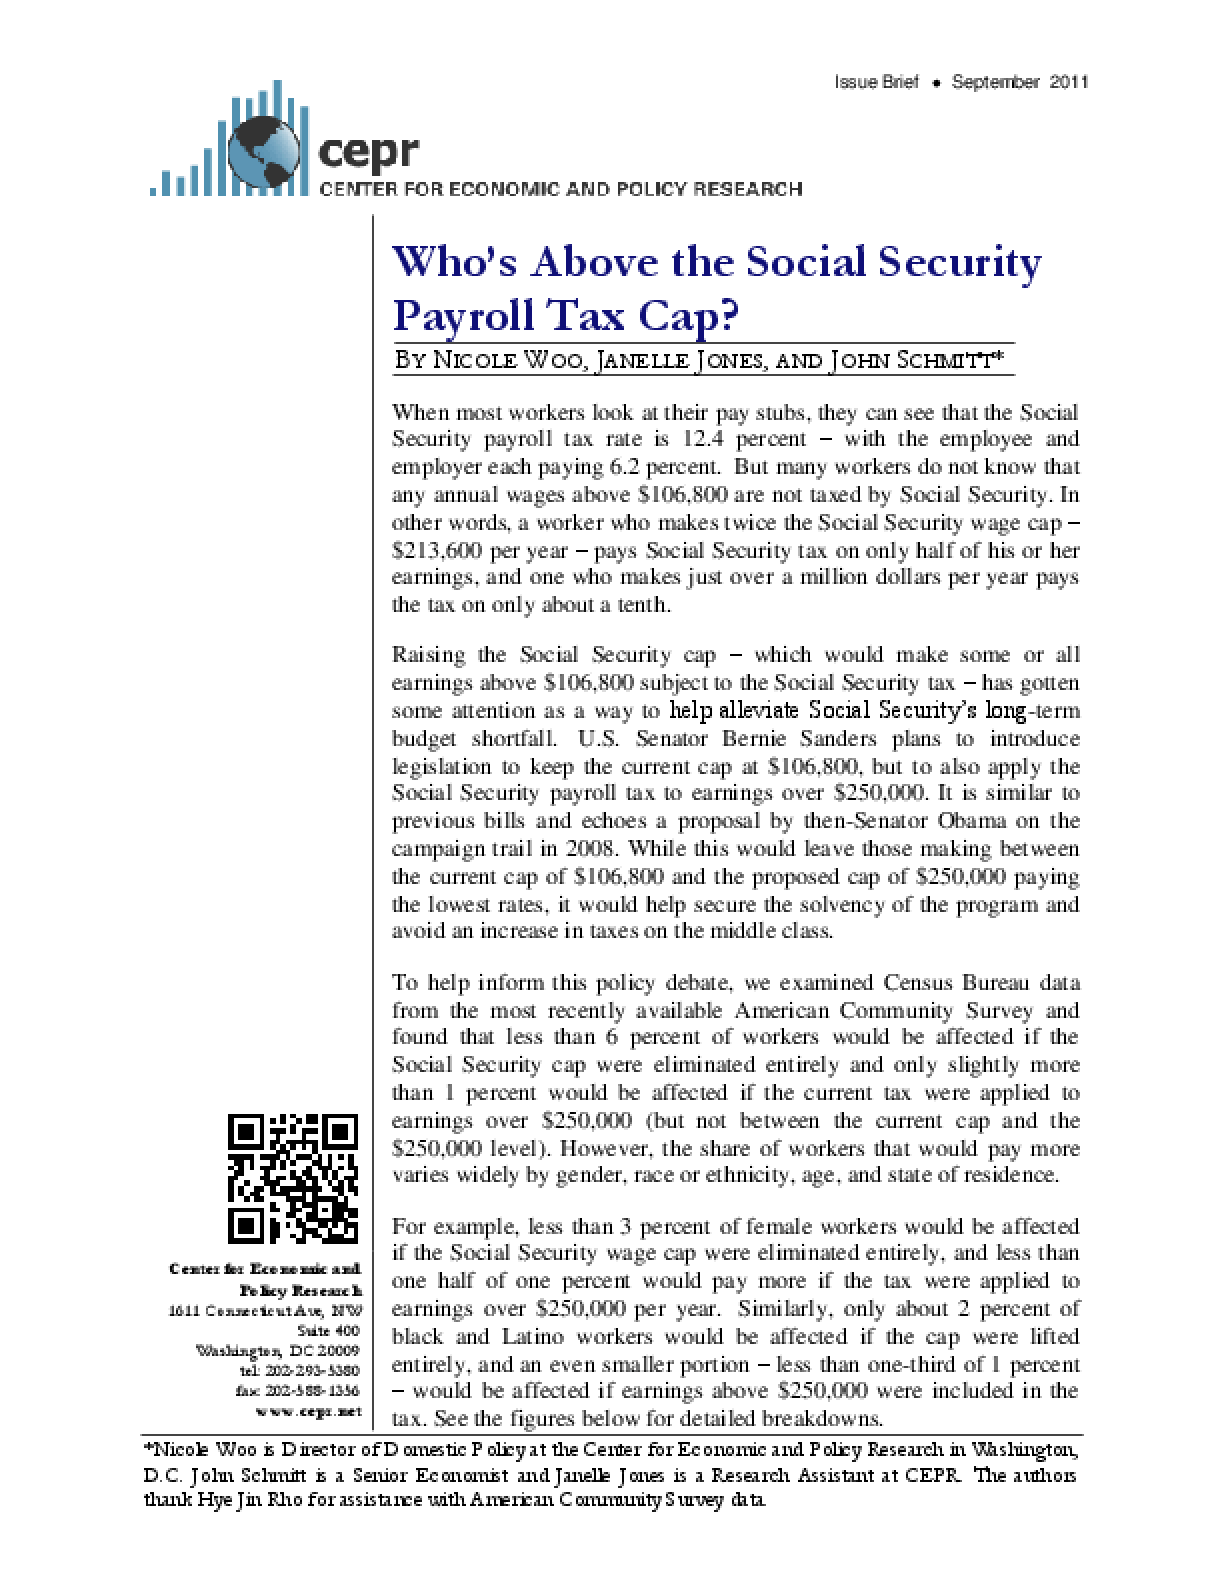 Who's Above the Social Security Payroll Tax Cap?